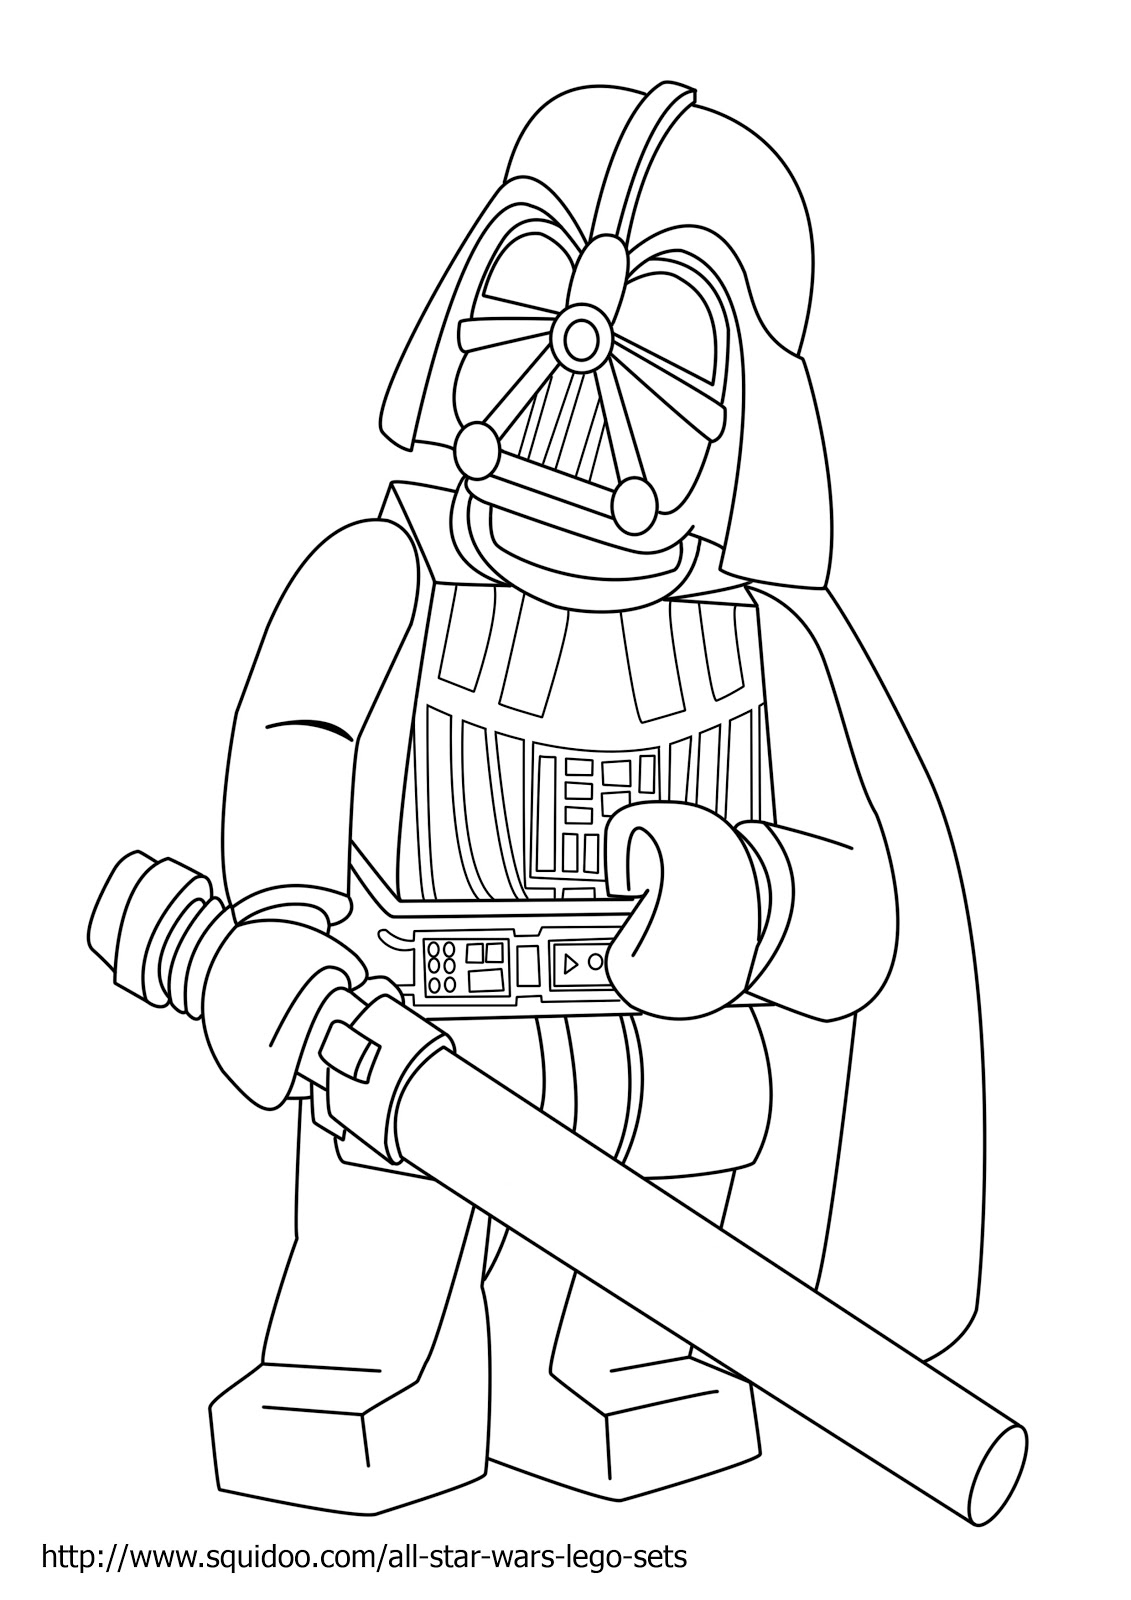 Pin ahsoka coloring colouring pages ajilbabcom portal on for Star wars coloring pages